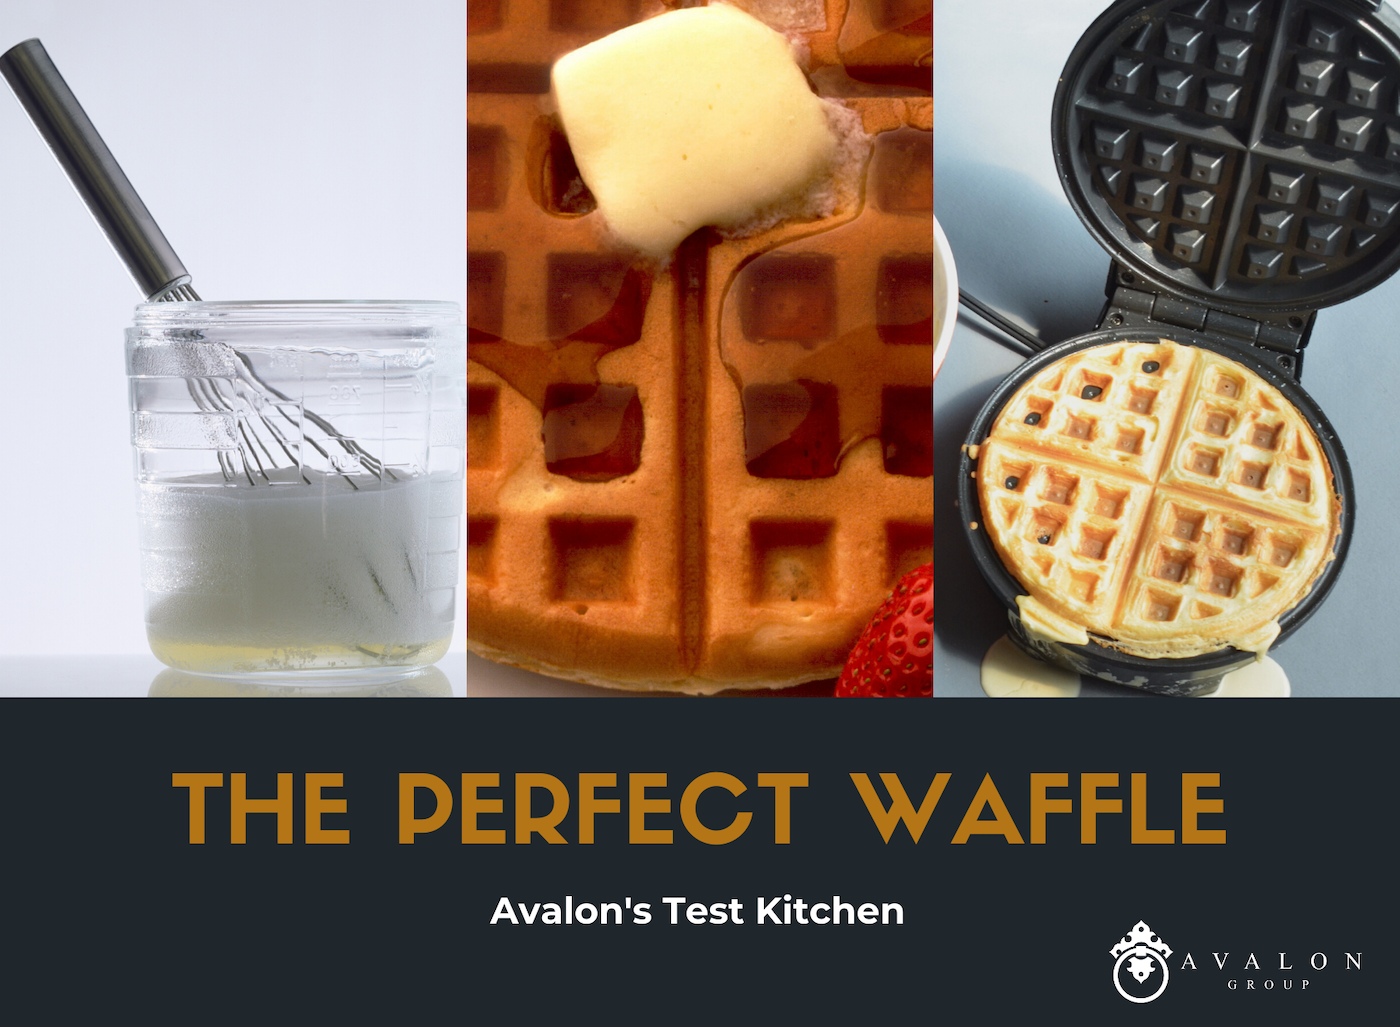 """Perfect Waffle Recipe Cover page says """"The Perfect Waffle Recipe Avalon Test Kitchen"""" , there is a picture of a glass bowl with a whisk in buttermilk and egg. The center picture is a waffle that is golden brown with butter on top and a strawberry to the lower right. The picture on the right has a waffle iron with a waffle in it."""